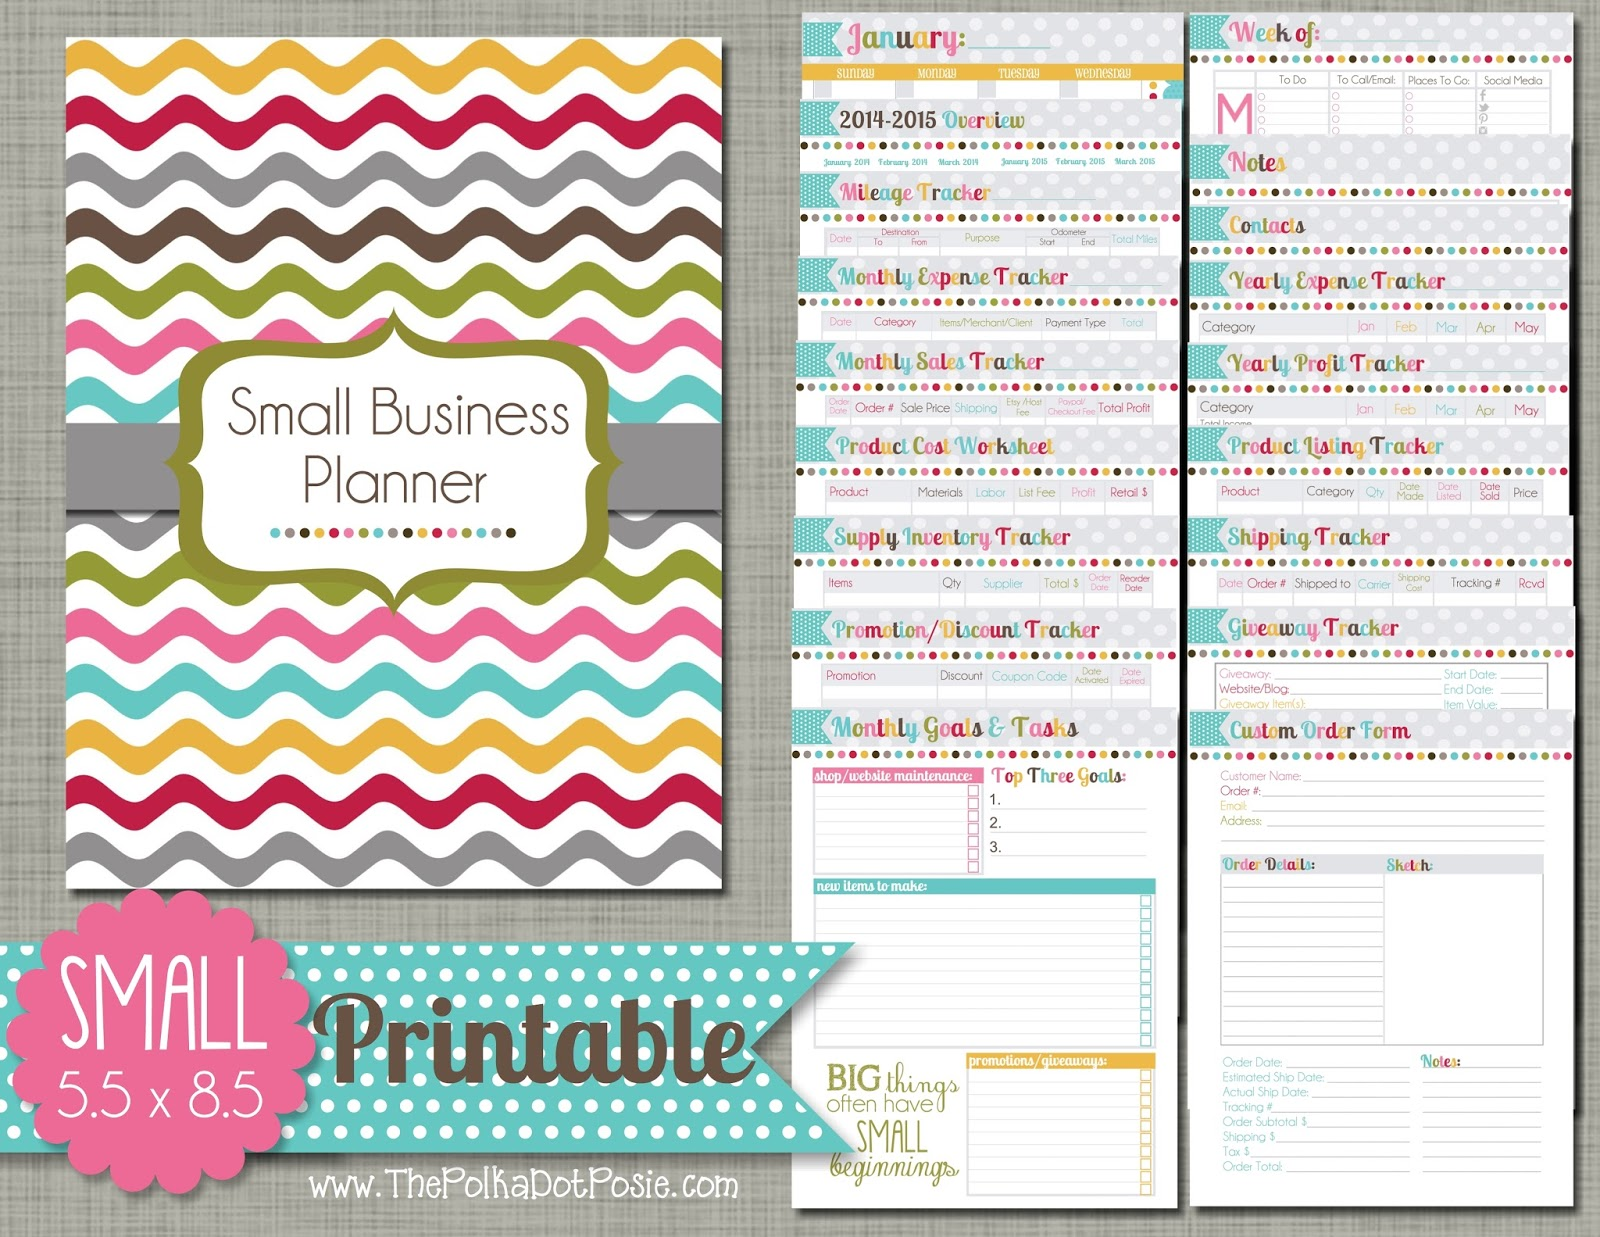 The Polka Dot Posie Planners